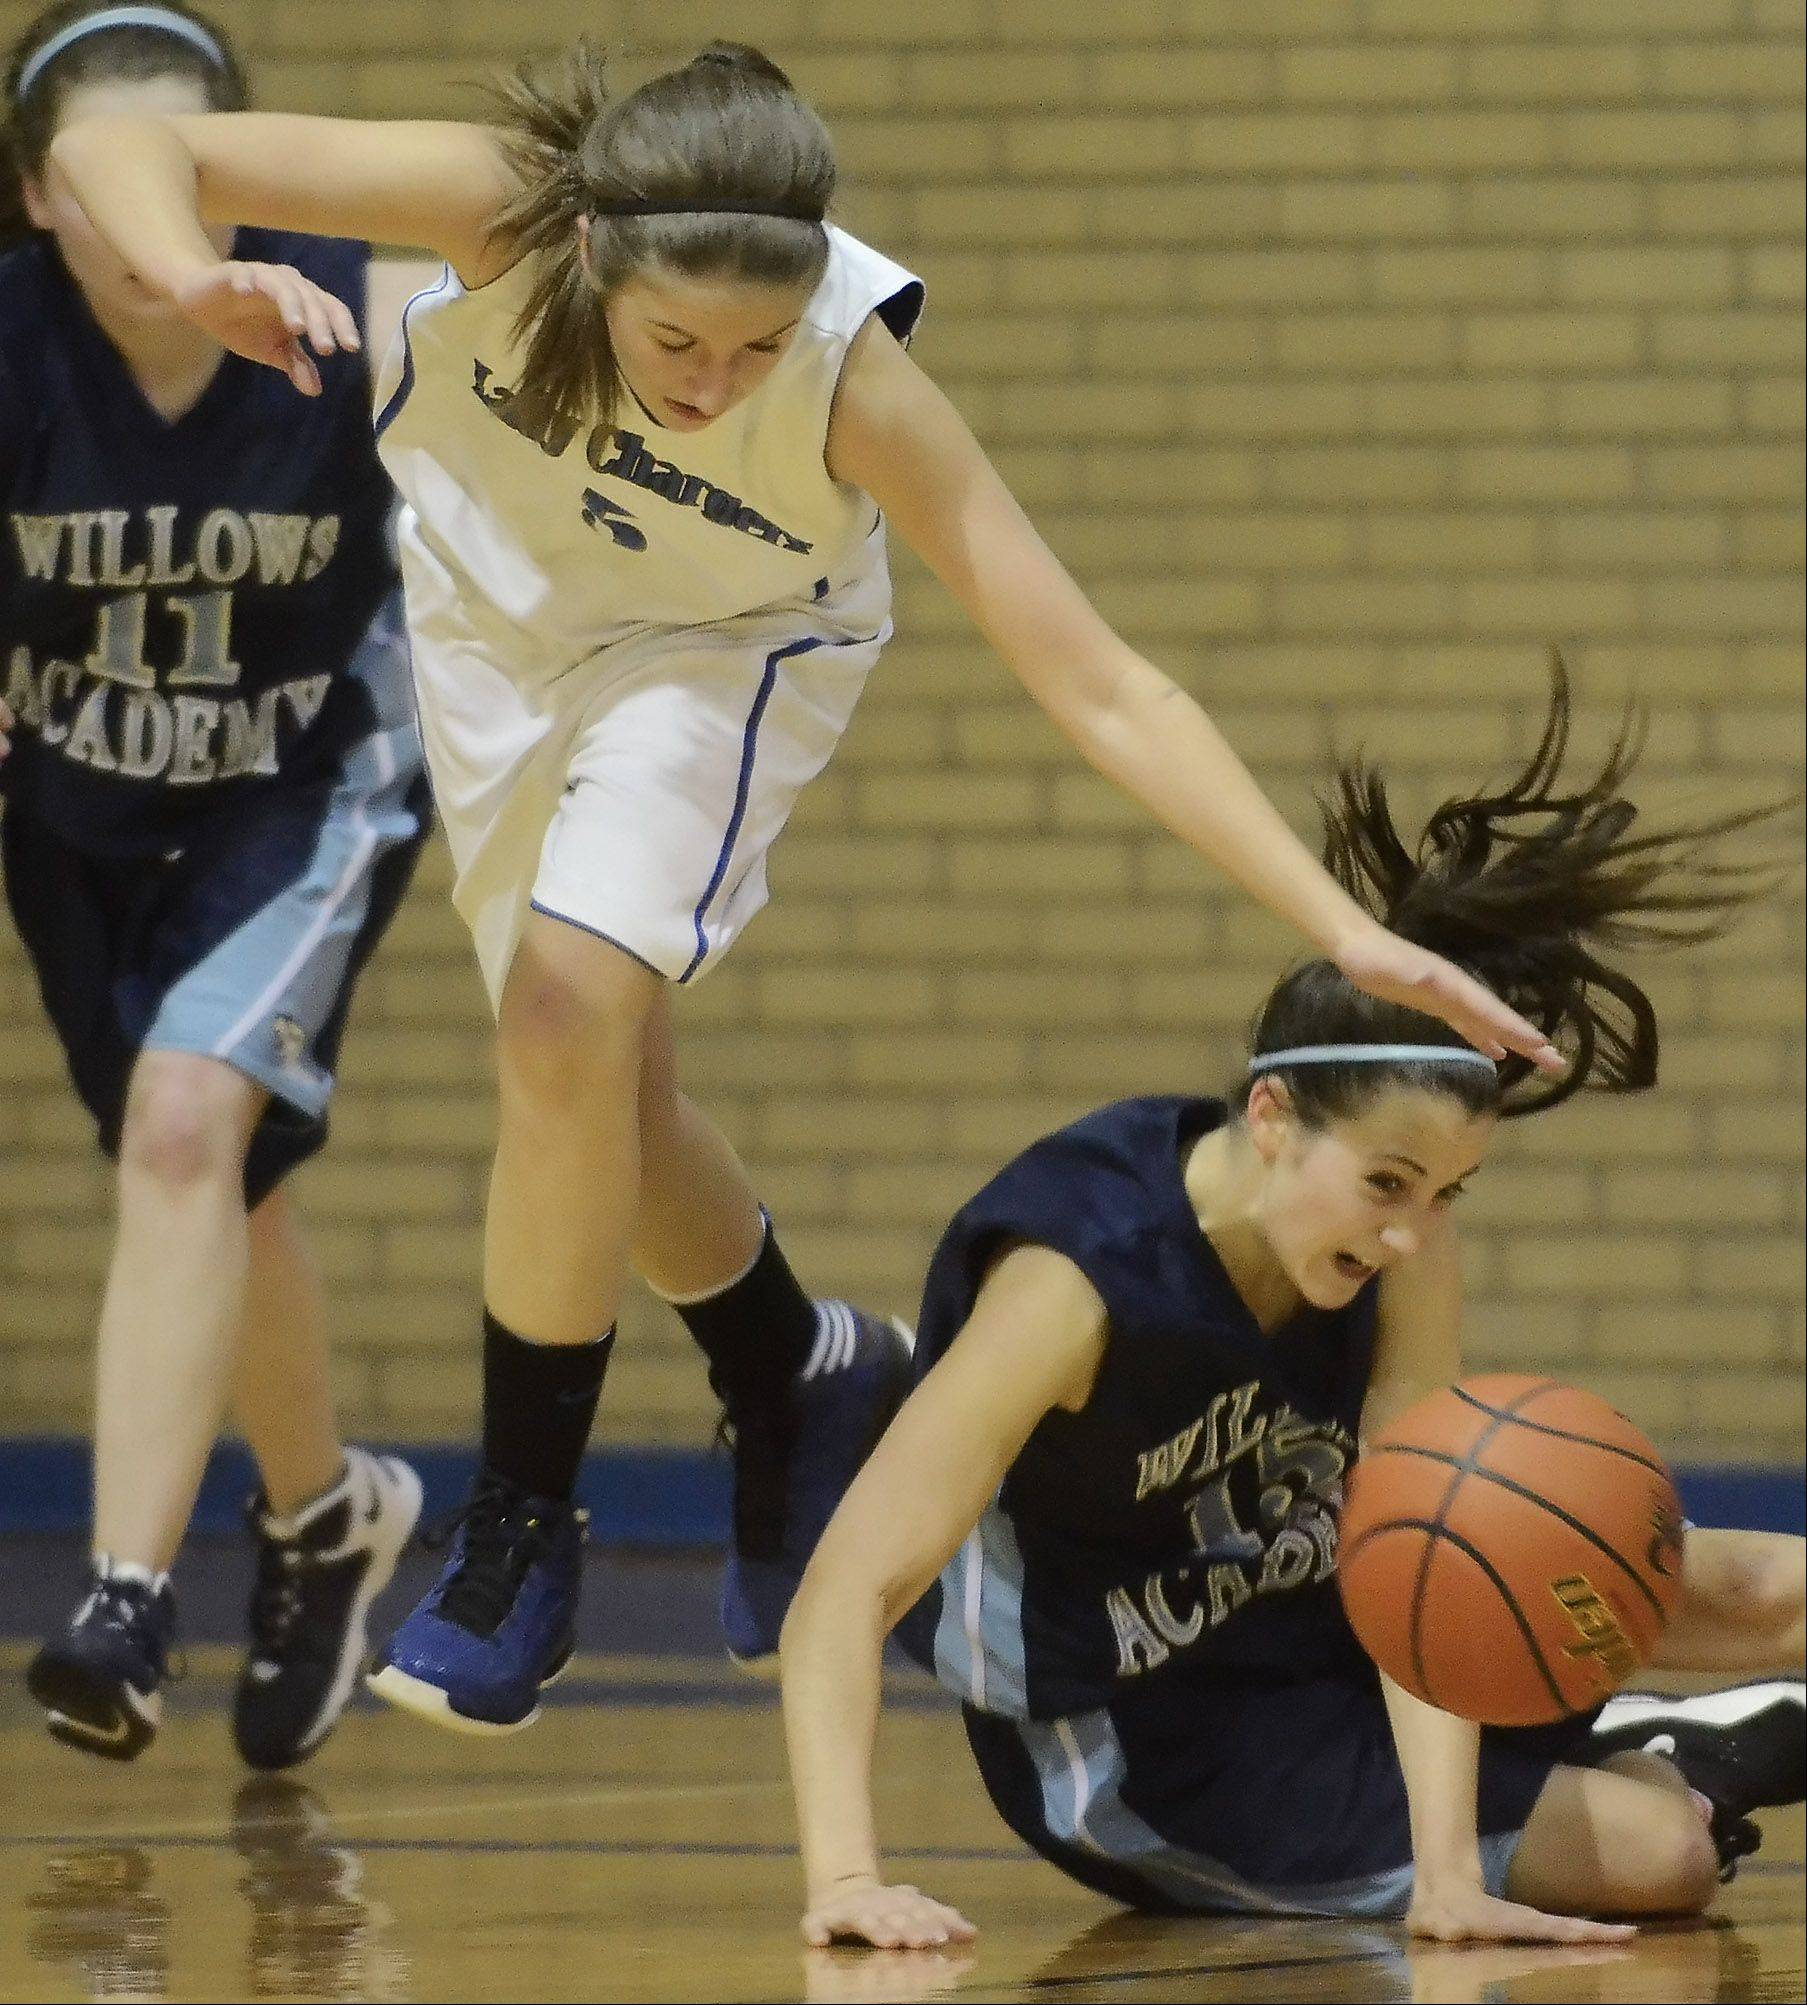 Christian Liberty Academy's Jess Moriarty, left, tries to take control of a loose ball as Keelin McNally of Willows Academy falls to the floor during Wednesday's game.